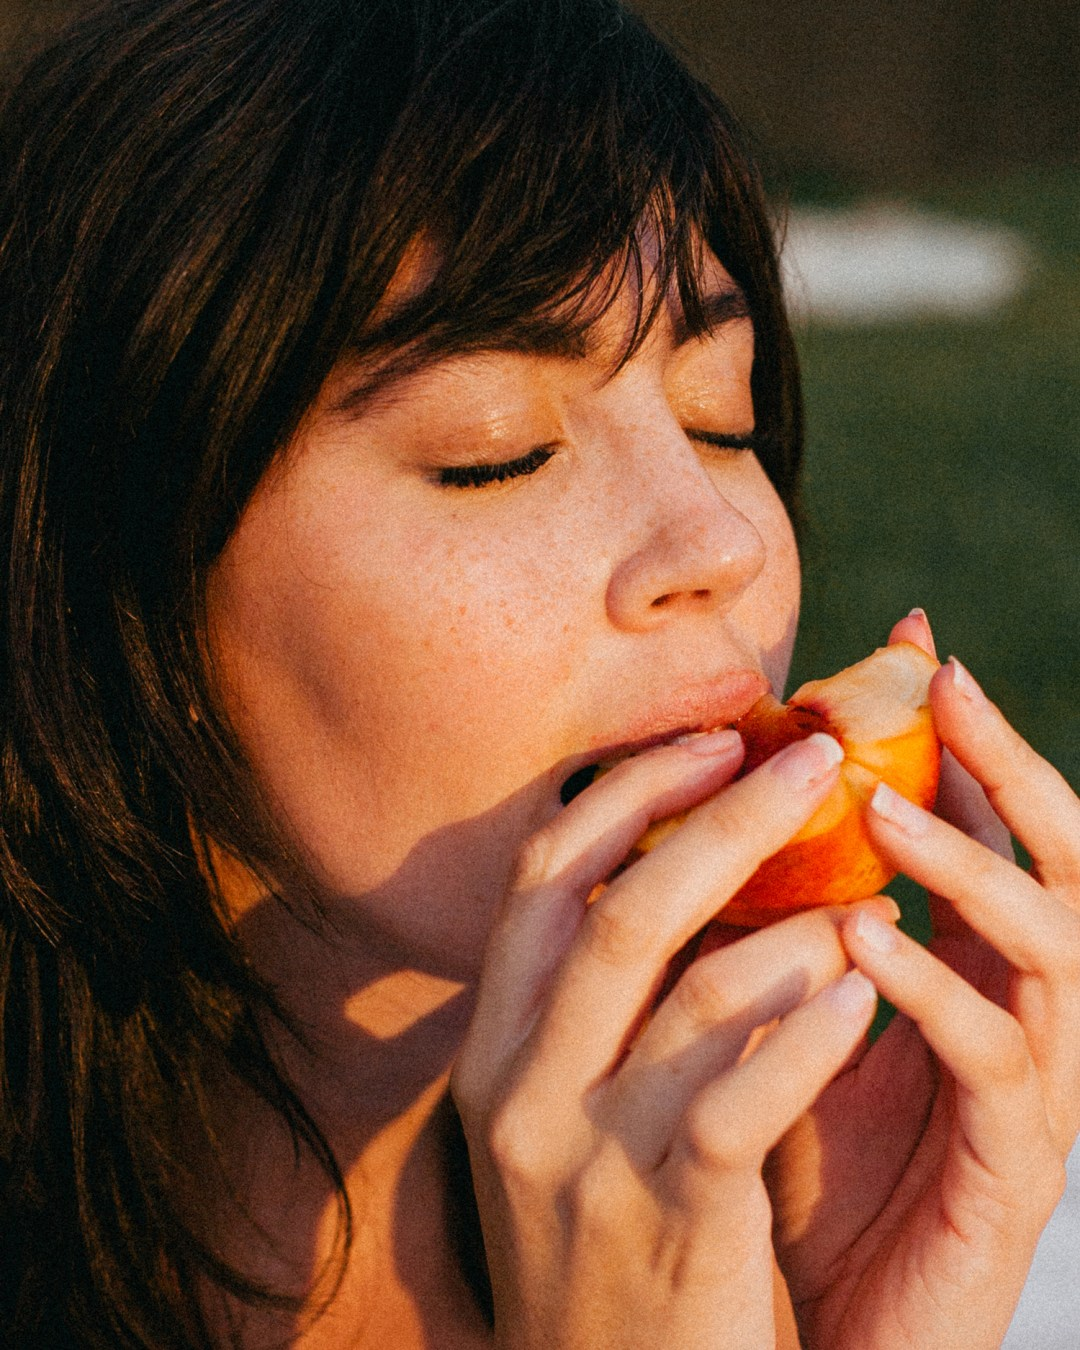 closeup of girl eating peach